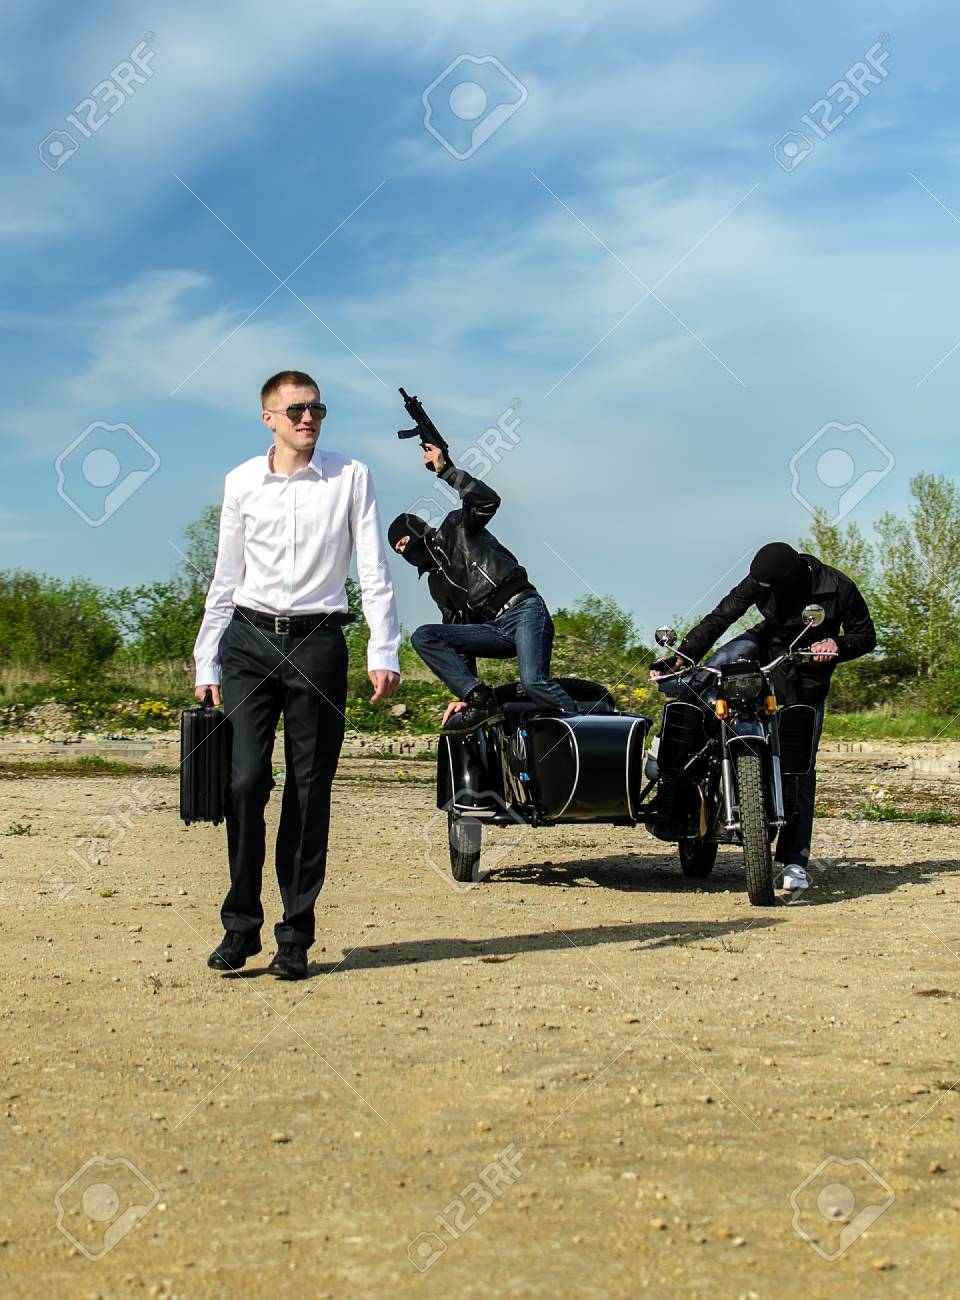 Two bandits kidnapped a businessman with a suitcase Stock Photo - 13758849